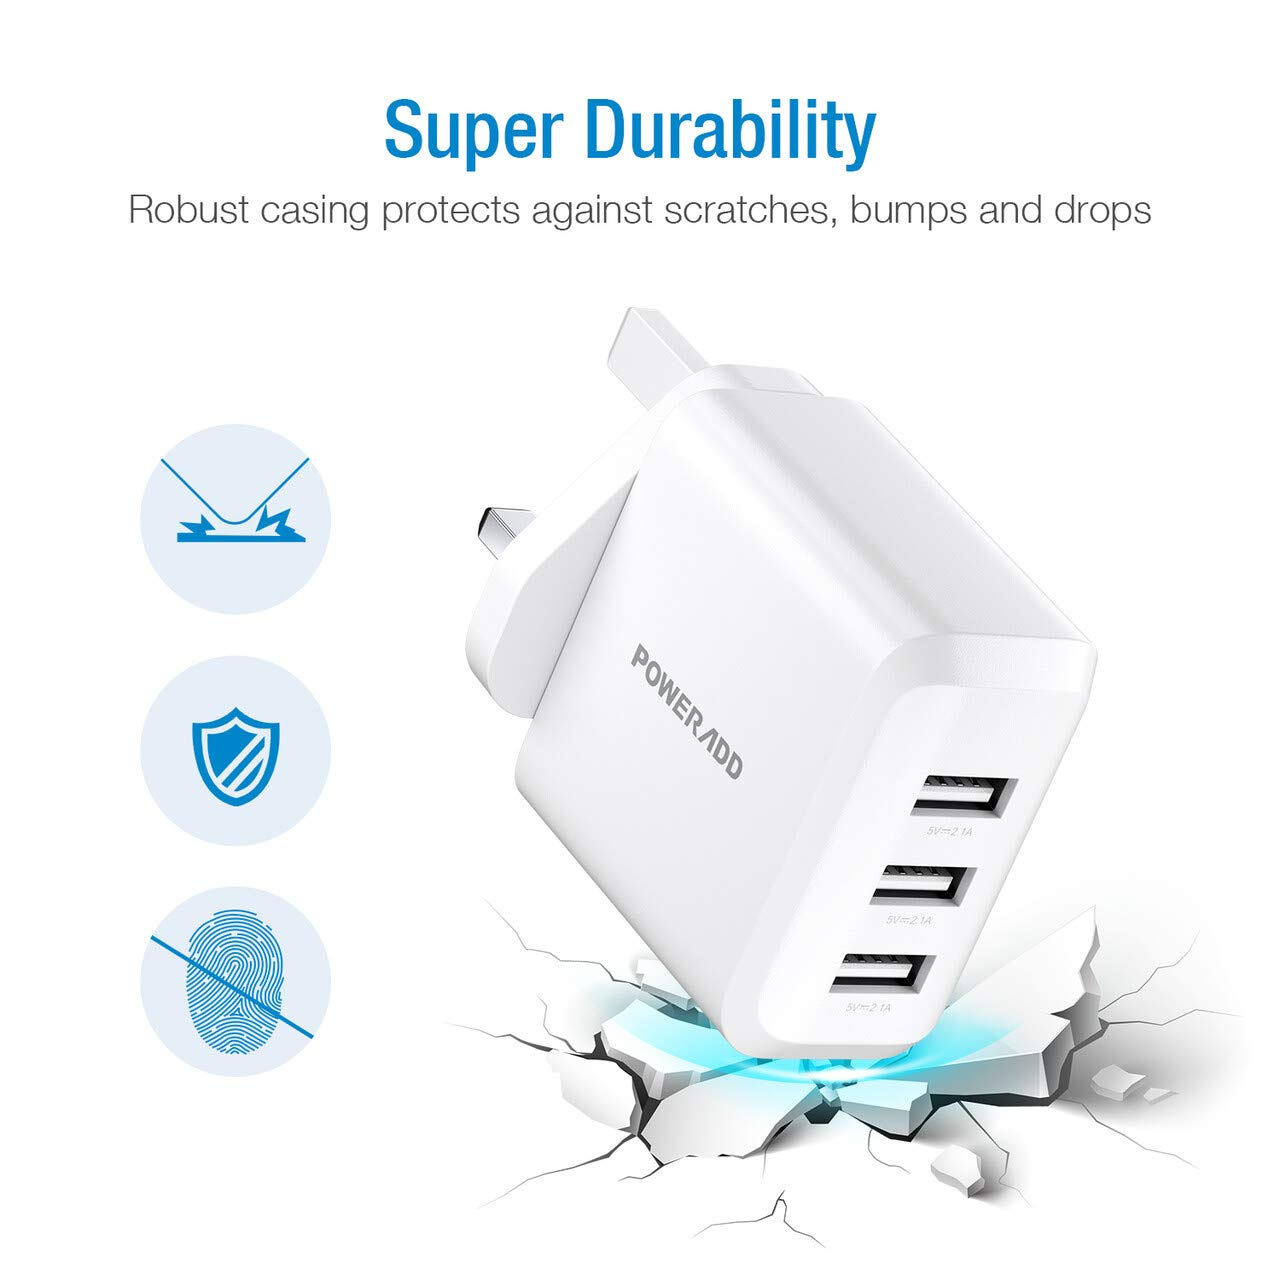 Poweradd 30W Main Charger, 3-Port USB Wall Charger, USB Plug Chargers Compatible with Apple iPhone 11 Pro/XS Max/XR/X/8/8 Plus, Galaxy, iPad and More - White